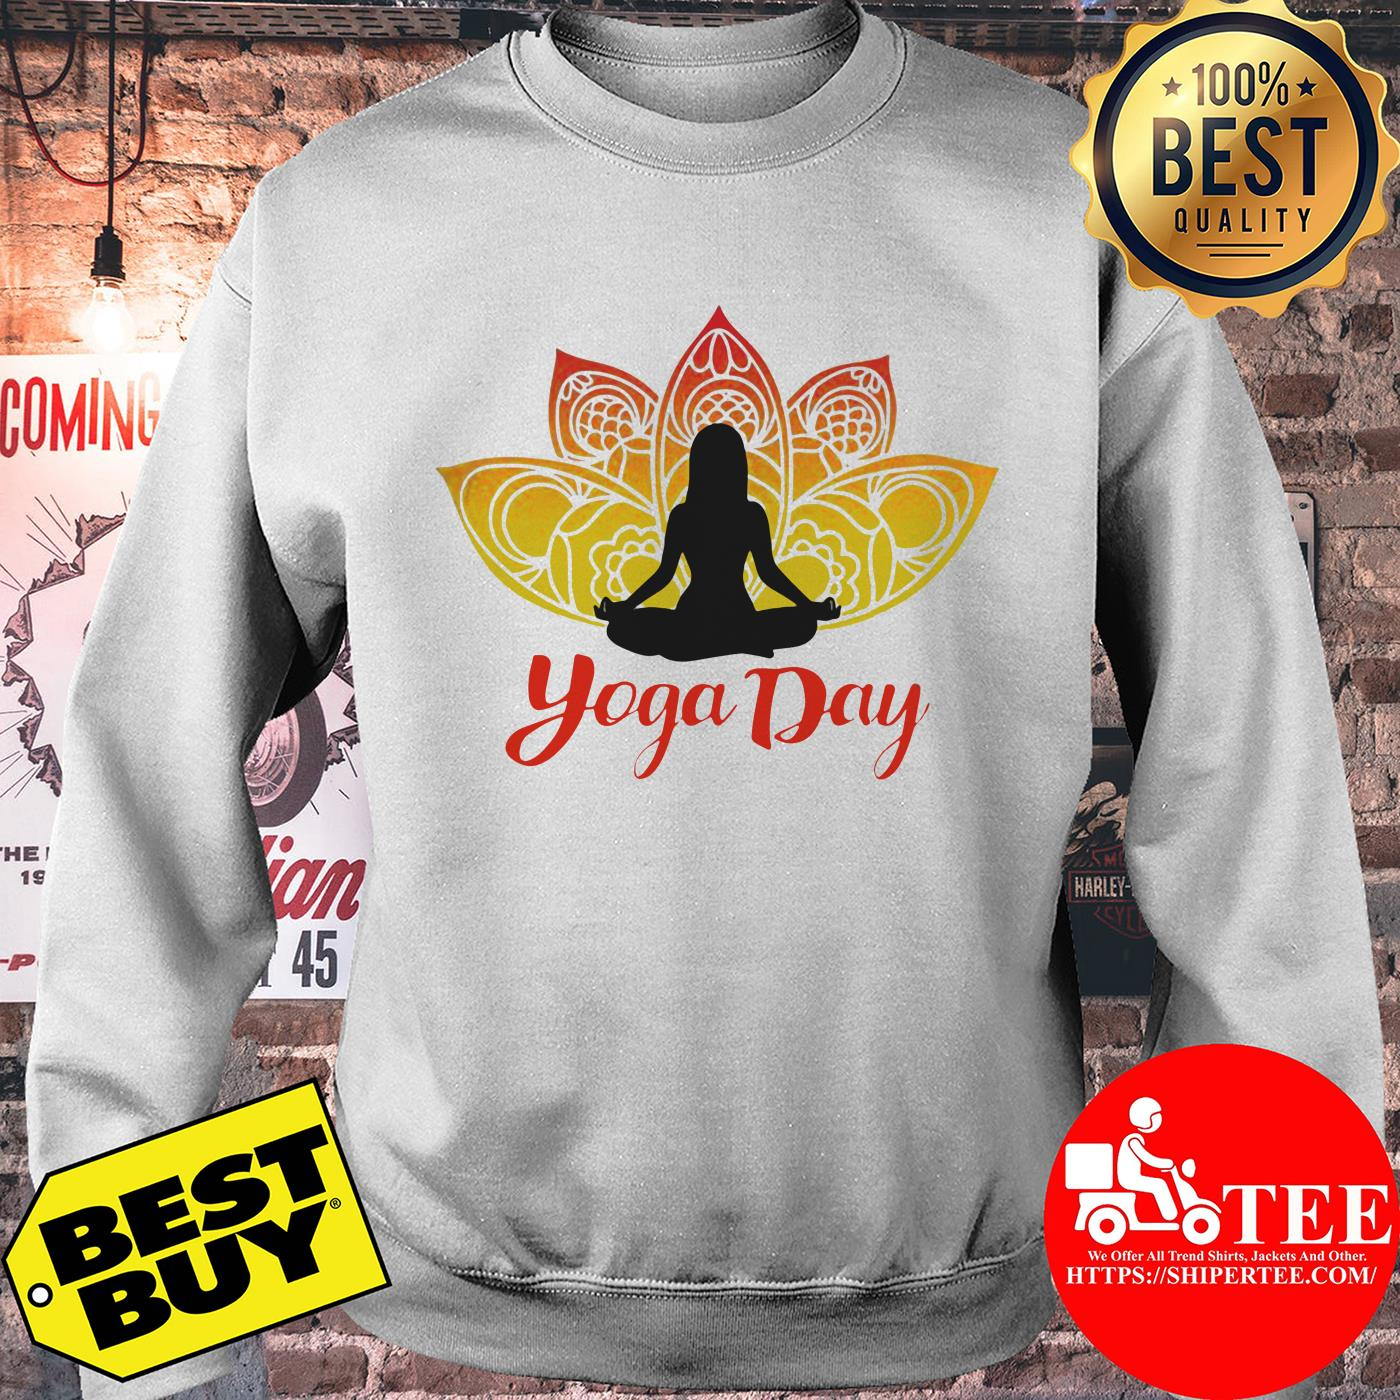 Yoga Day 21th June 2019 sweatshirt